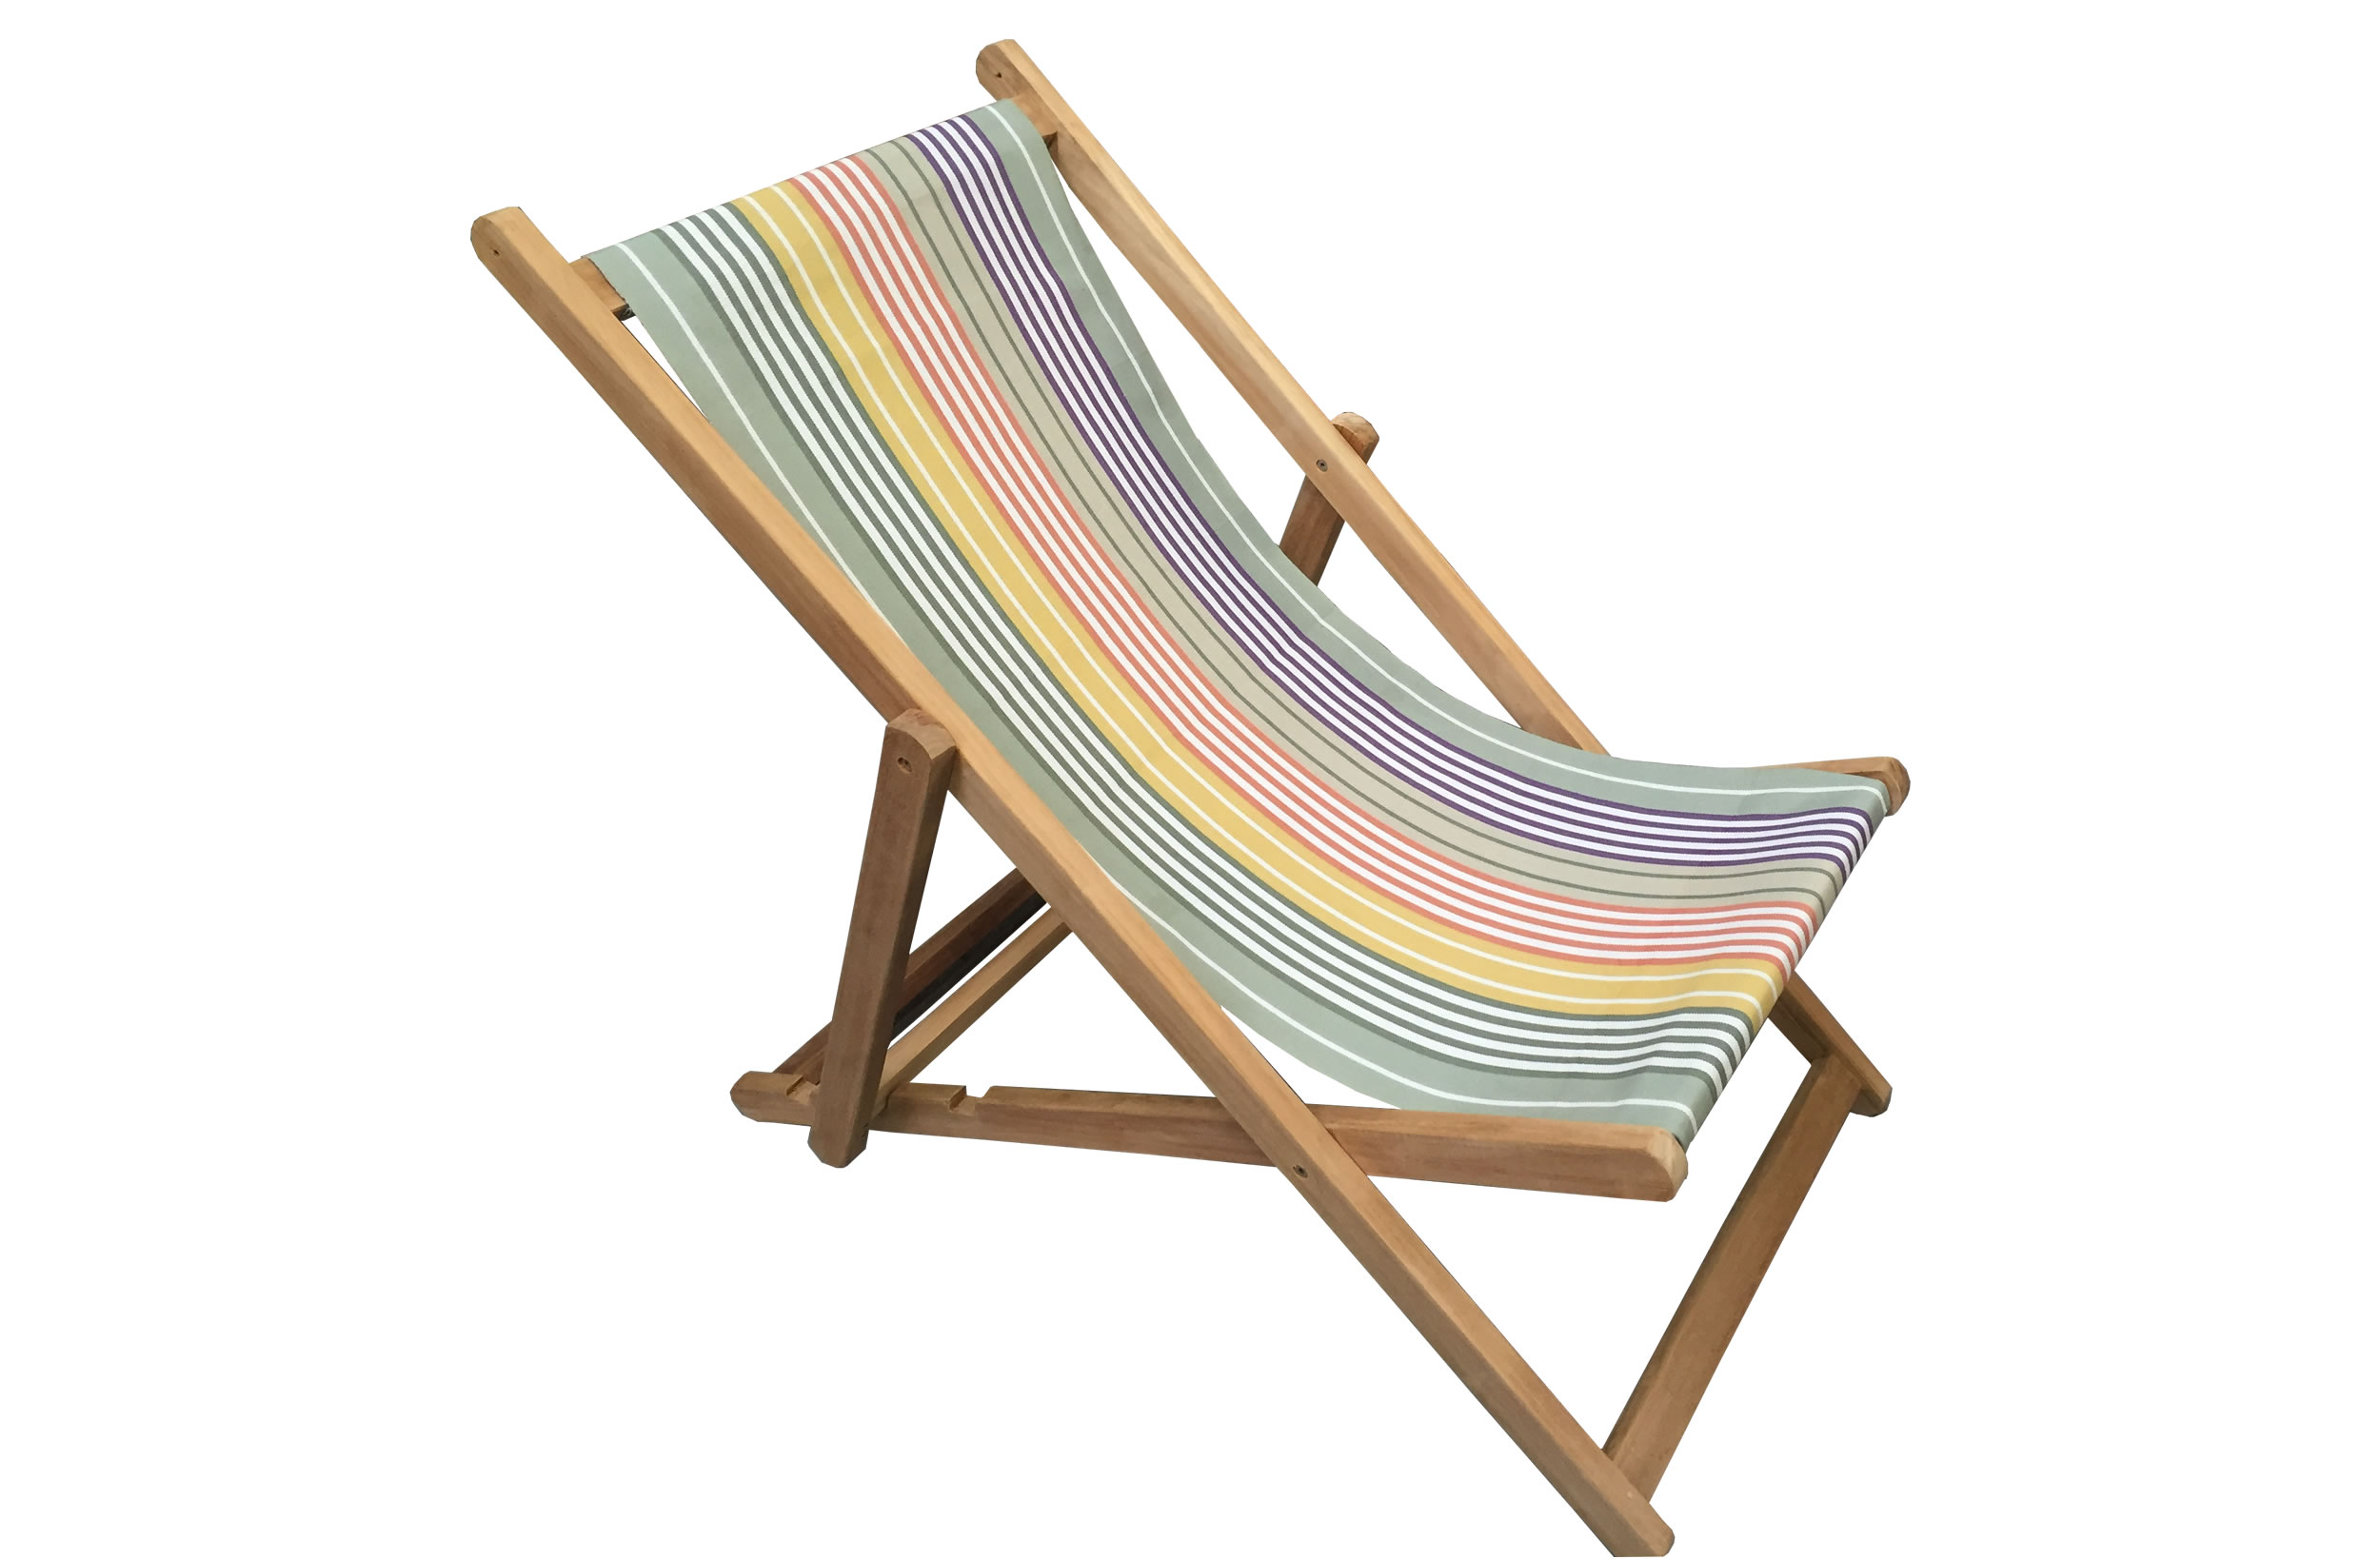 Sage Green Deckchairs | Wooden Folding Deck Chairs Boules Stripe